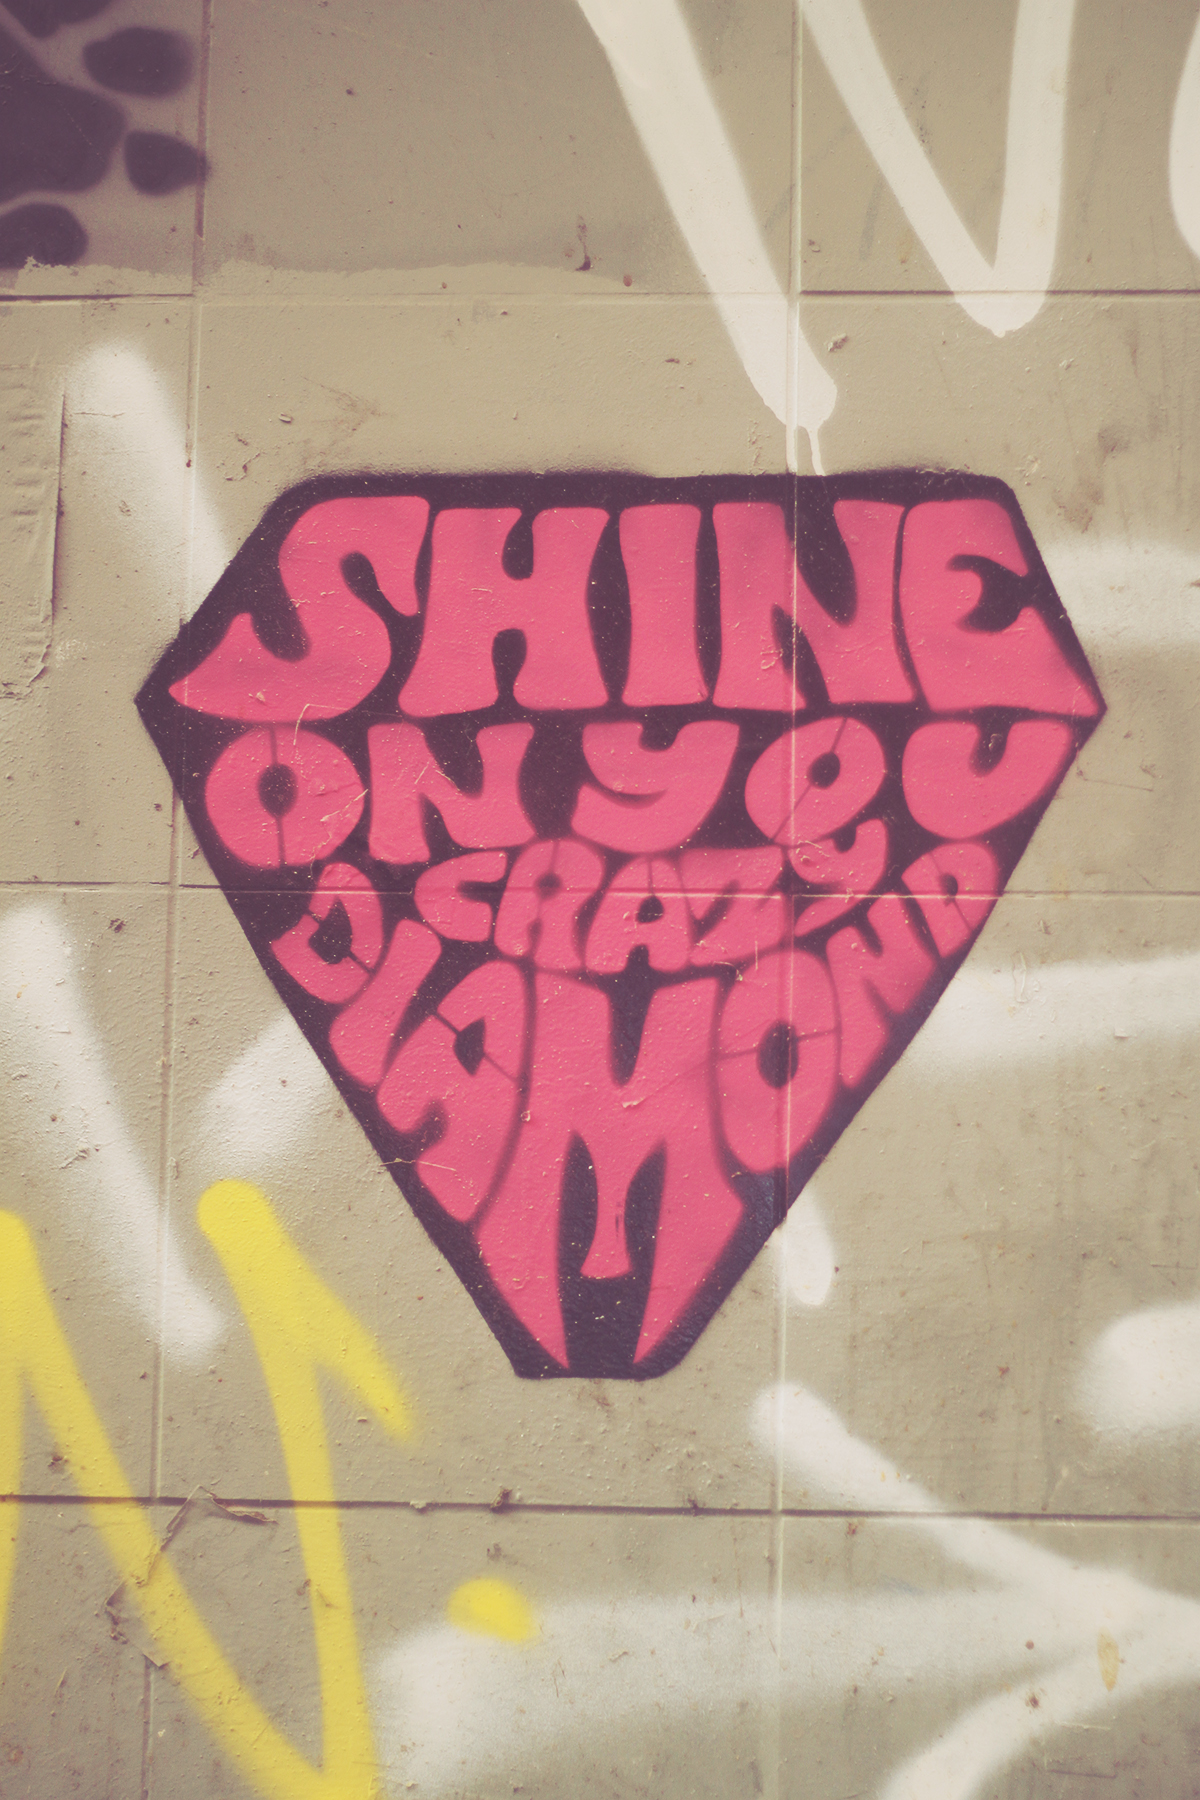 istanbul_graffiti shine on you crazy dimond